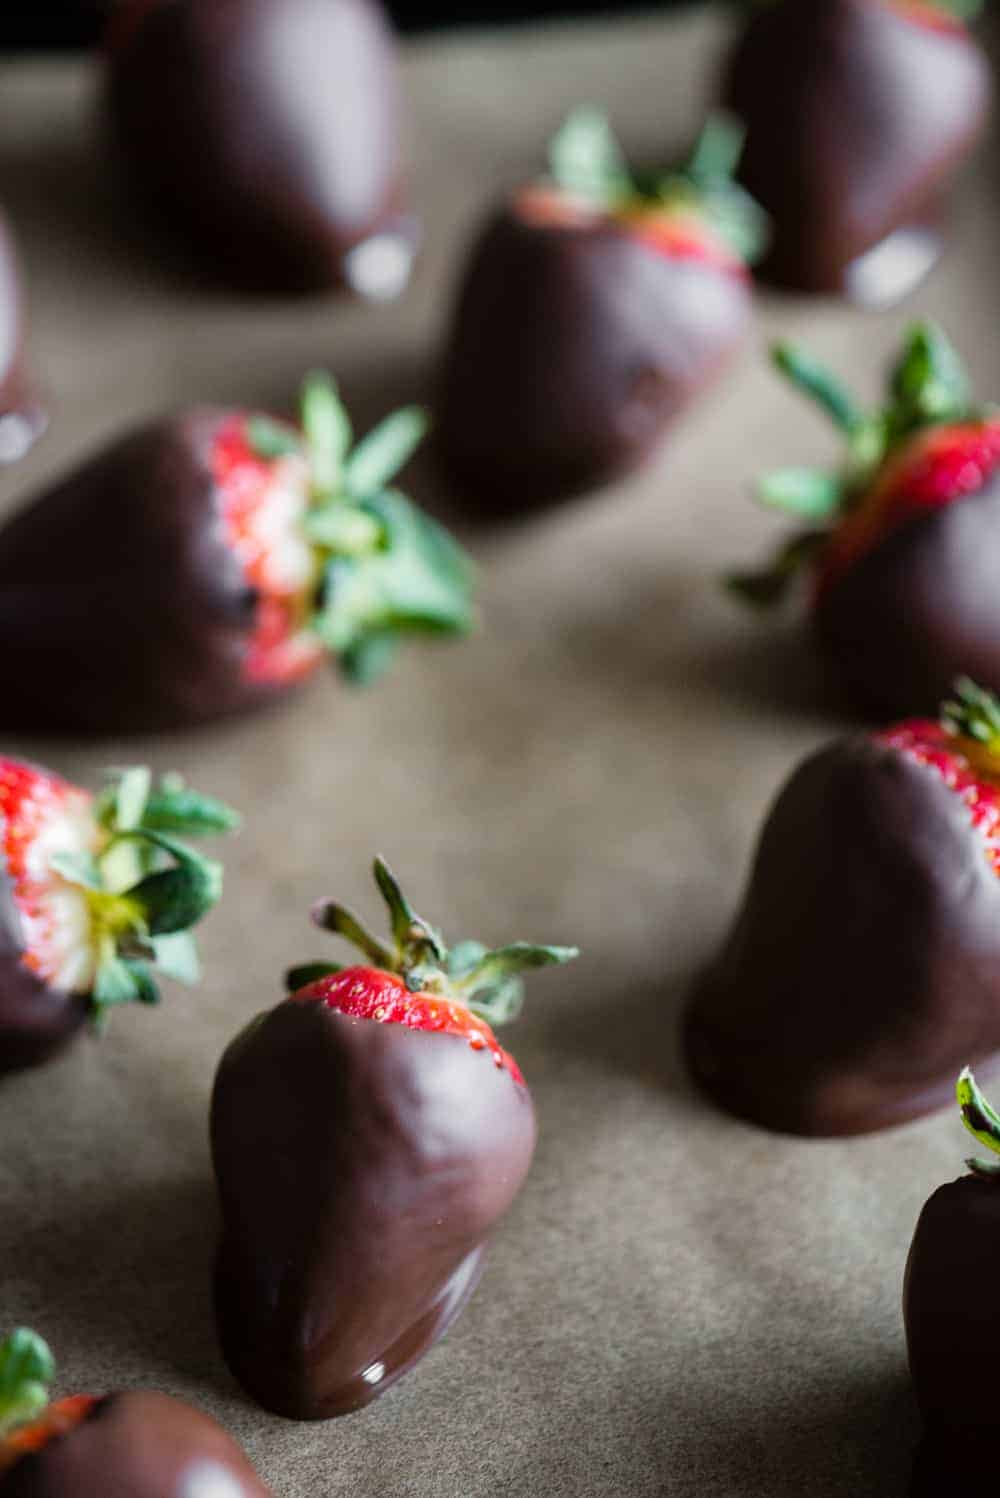 How To Make Chocolate Covered Strawberries Self Proclaimed Foodie